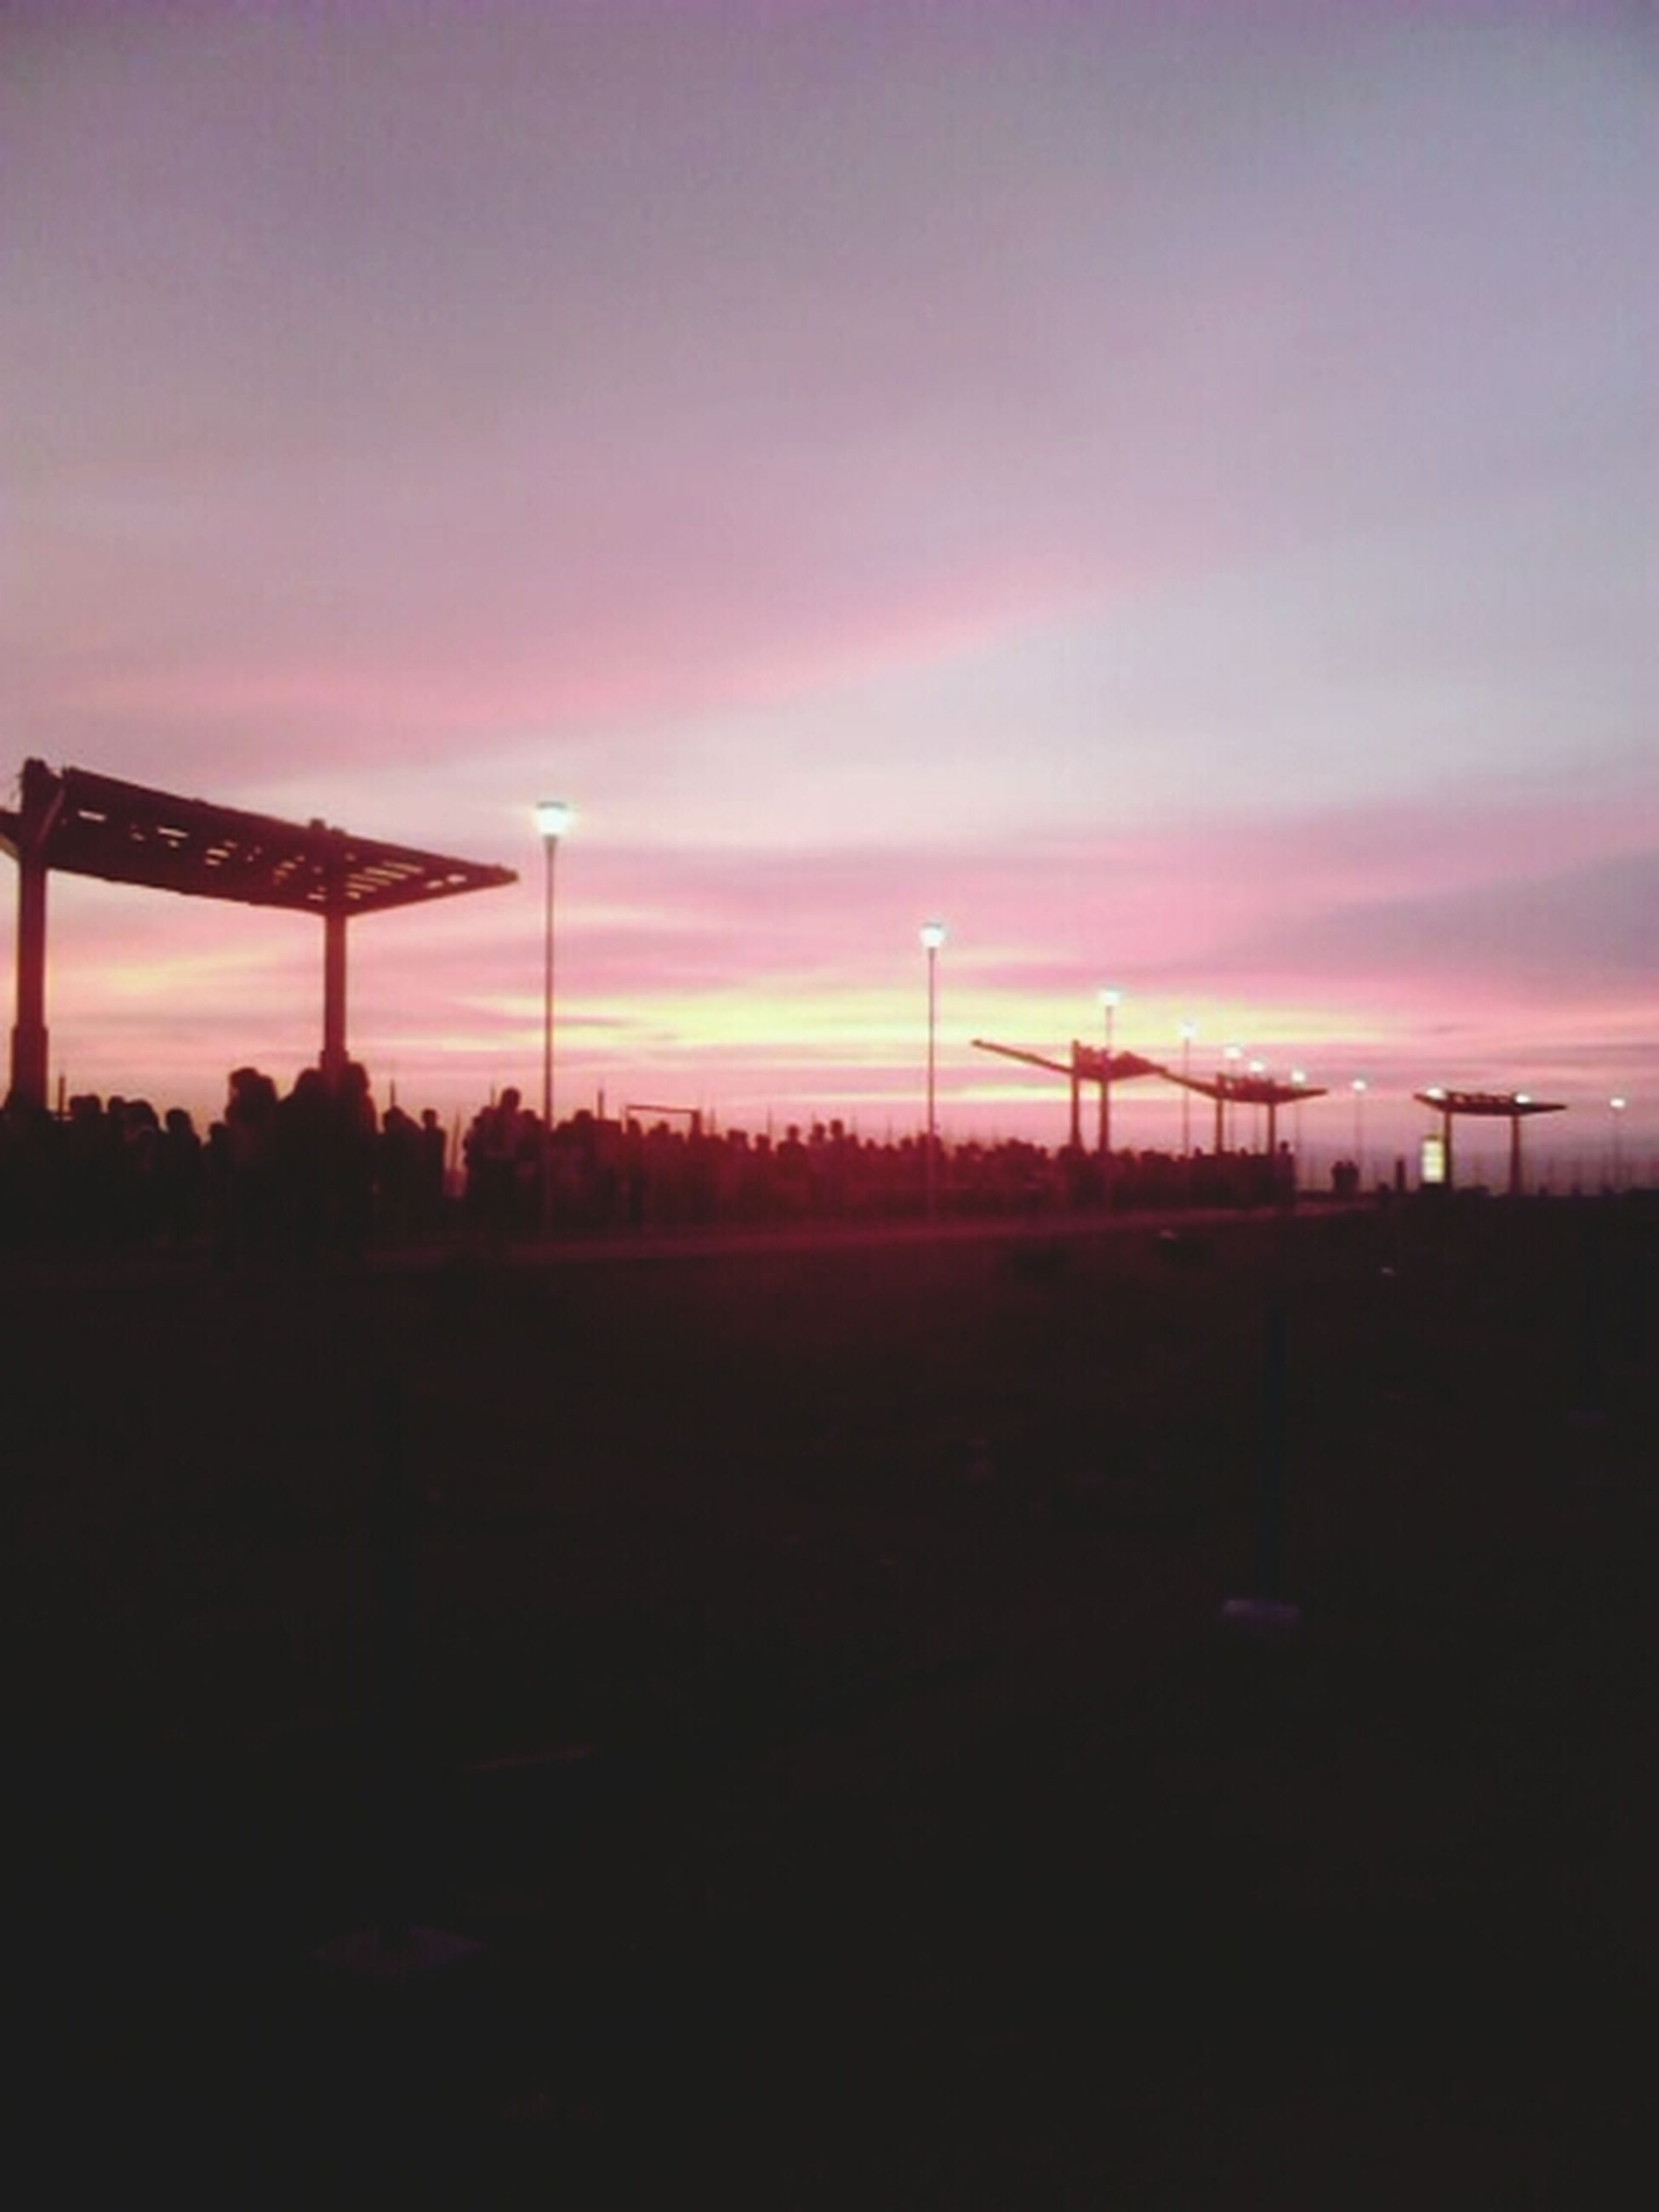 sunset, silhouette, sky, orange color, tranquility, scenics, tranquil scene, landscape, beauty in nature, nature, dark, dusk, cloud - sky, connection, electricity pylon, idyllic, dramatic sky, no people, outdoors, copy space